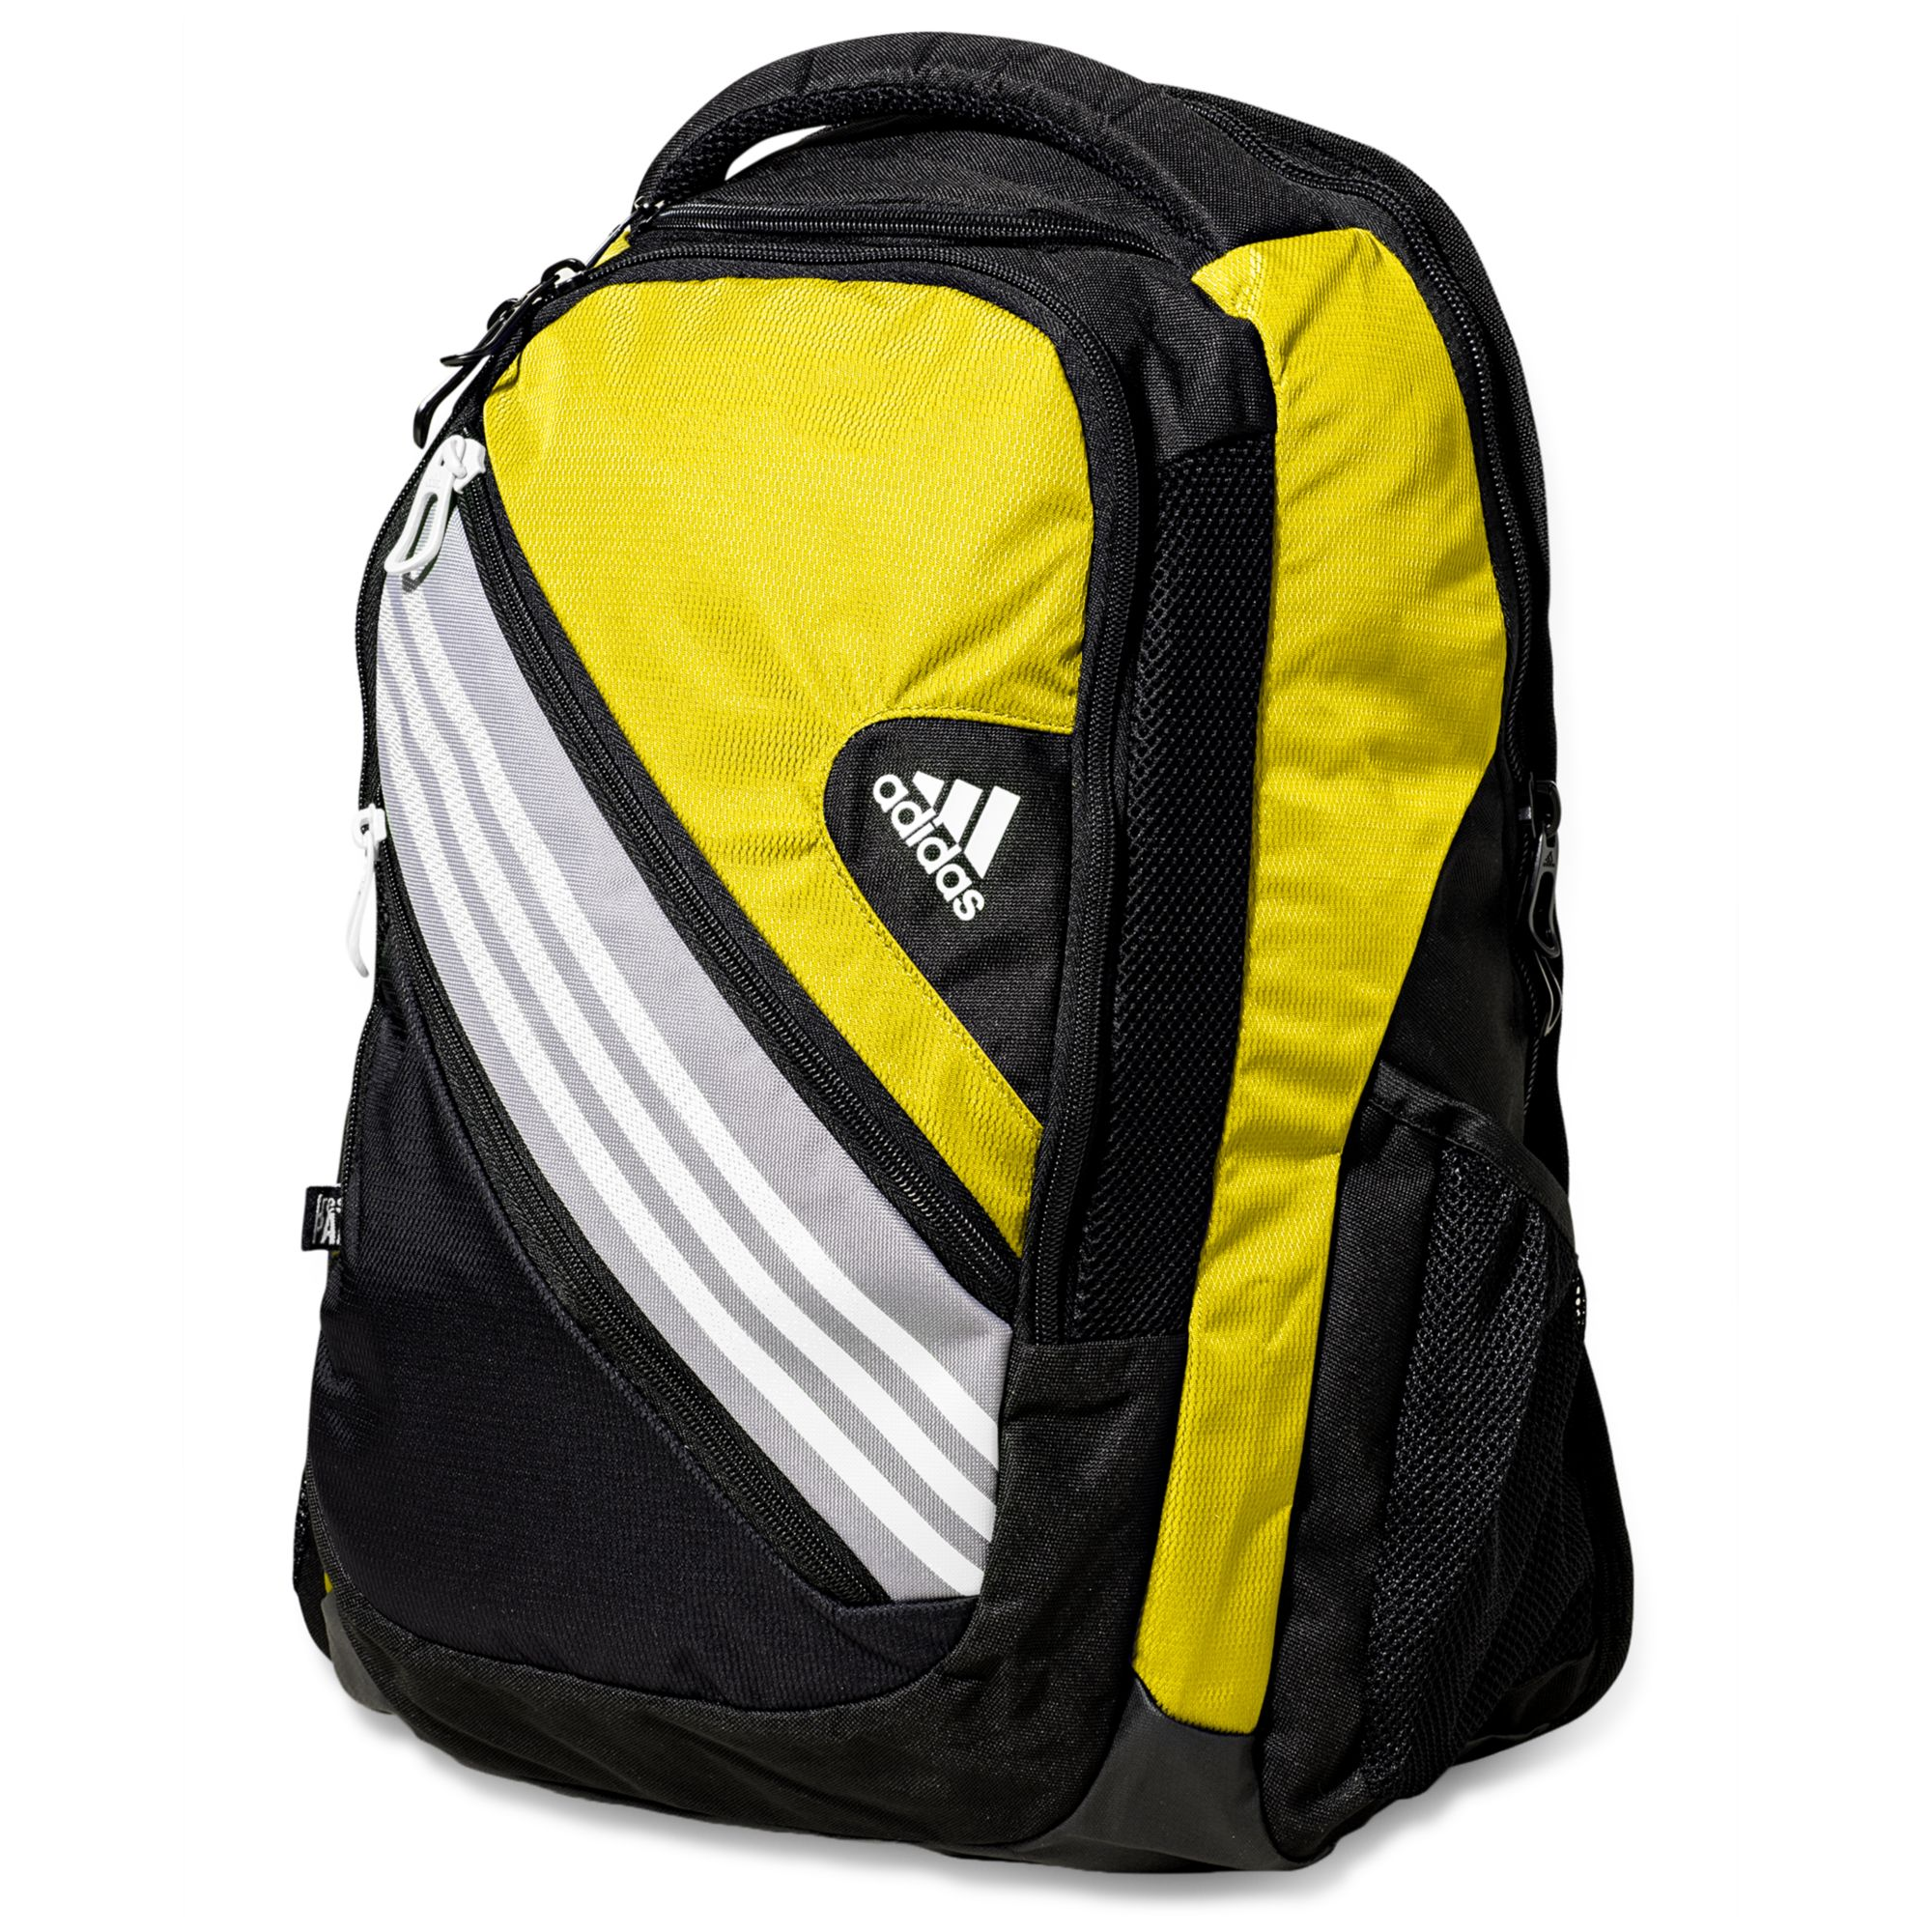 Lyst - adidas Climacool Speed Iii Backpack in Yellow for Men 6b61505da8